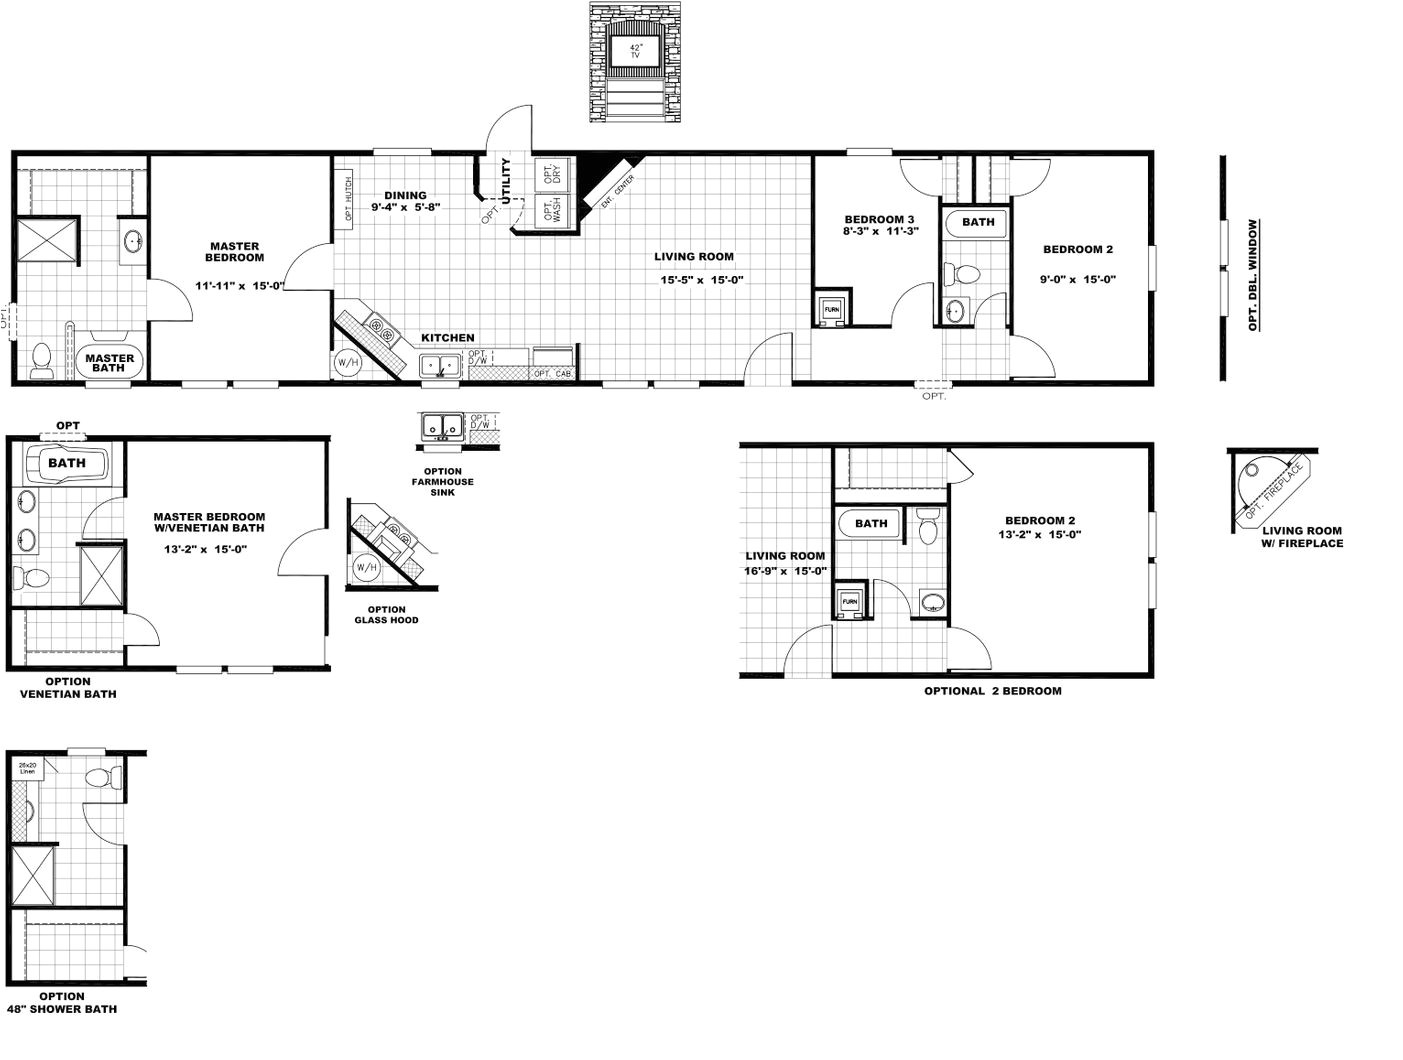 2005 fleetwood entertainer mobile home floor plan